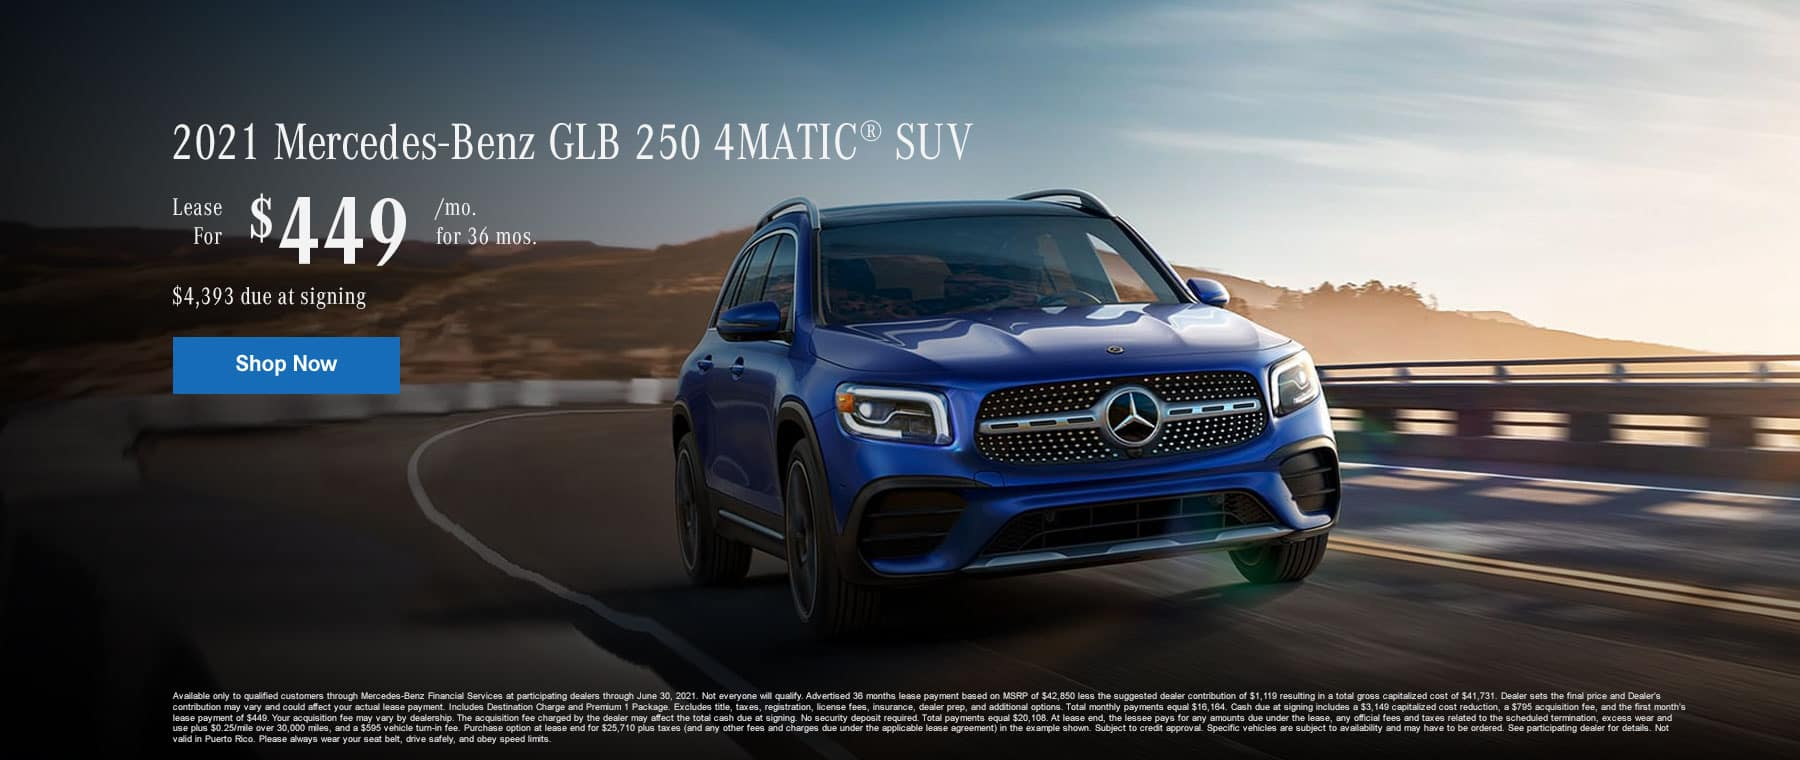 2021 Mercedes-Benz GLB 250 4MATIC® SUV Lease for $449/month for 36 months. $4,393 due at signing